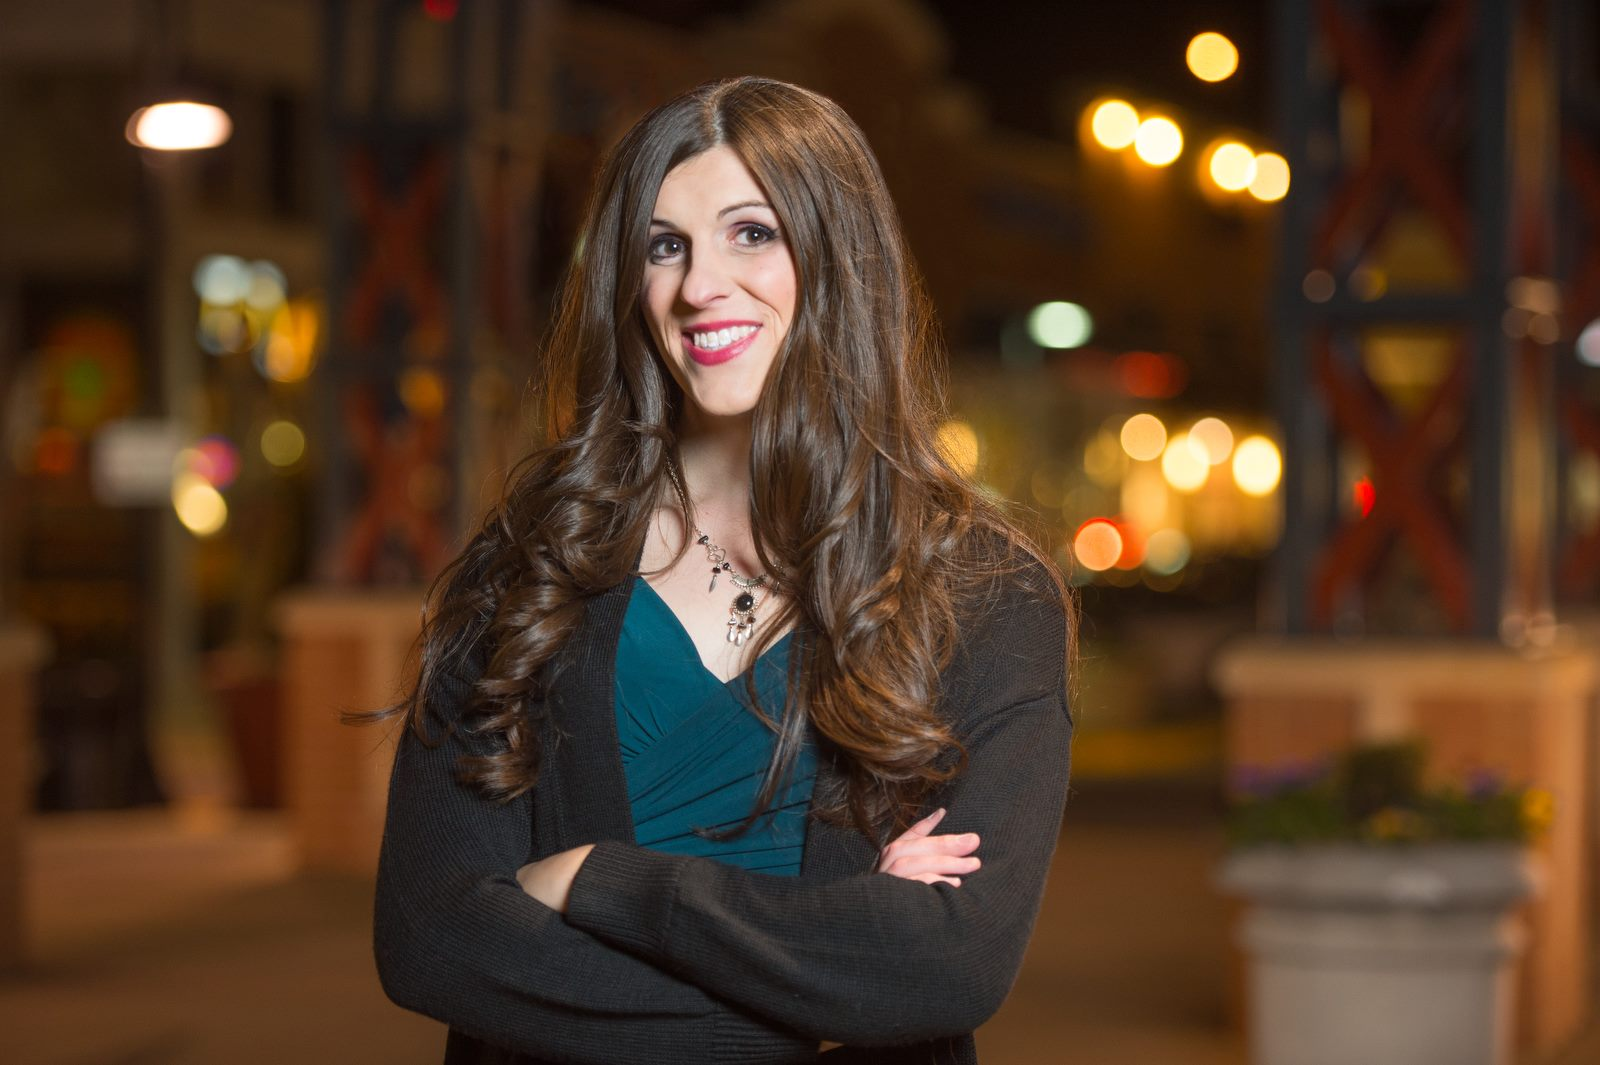 DANICA ROEM - Meet the candidate: Danica RoemDanica Roem is a 32-year-old step-mom, journalist and lifelong Manassas resident. After earning a Bachelor of Arts degree in Journalism/Mass Communication from St. Bonaventure University (New York) in 2006, she authored more than 2,500 news stories about the greater Prince William County area as the lead reporter of the Gainesville Times from 2006-2015, where her reporting won seven Virginia Press Association awards.She most recently served as the news editor of the Montgomery County Sentinel from 2015-2016, leaving her post three days before launching her campaign. She twice placed runner-up for the MDDC's James S. Keat Freedom of Information Award and won first place for local government and state government reporting in 2016. Danica also covered federal and state politics for The Hotline (National Journal Group) from 2009-2013 and worked as a content writer for Yoga Alliance from 2013-2014.On Jan. 3, 2017, Danica launched her campaign for the 13th District of the Virginia House of Delegates, becoming the first transgender person to ever run for the Virginia General Assembly. If elected, Danica would be the first out transgender person ever seated in an American state legislature.House District 13:Secretary Clinton won this district by 14 percent of the vote. The 13th encompasses parts of Prince William County and Manassas Park City, and is currently represented by Bob Marshall (R).Click here for more district details.Just one example of why Bob has to go:Bob is the apotheosis of all that is wrong with the radical right and is often an embarrassment to his own party. He has a long history of introducing discriminatory (a version of North Carolina's notorious anti-transgender